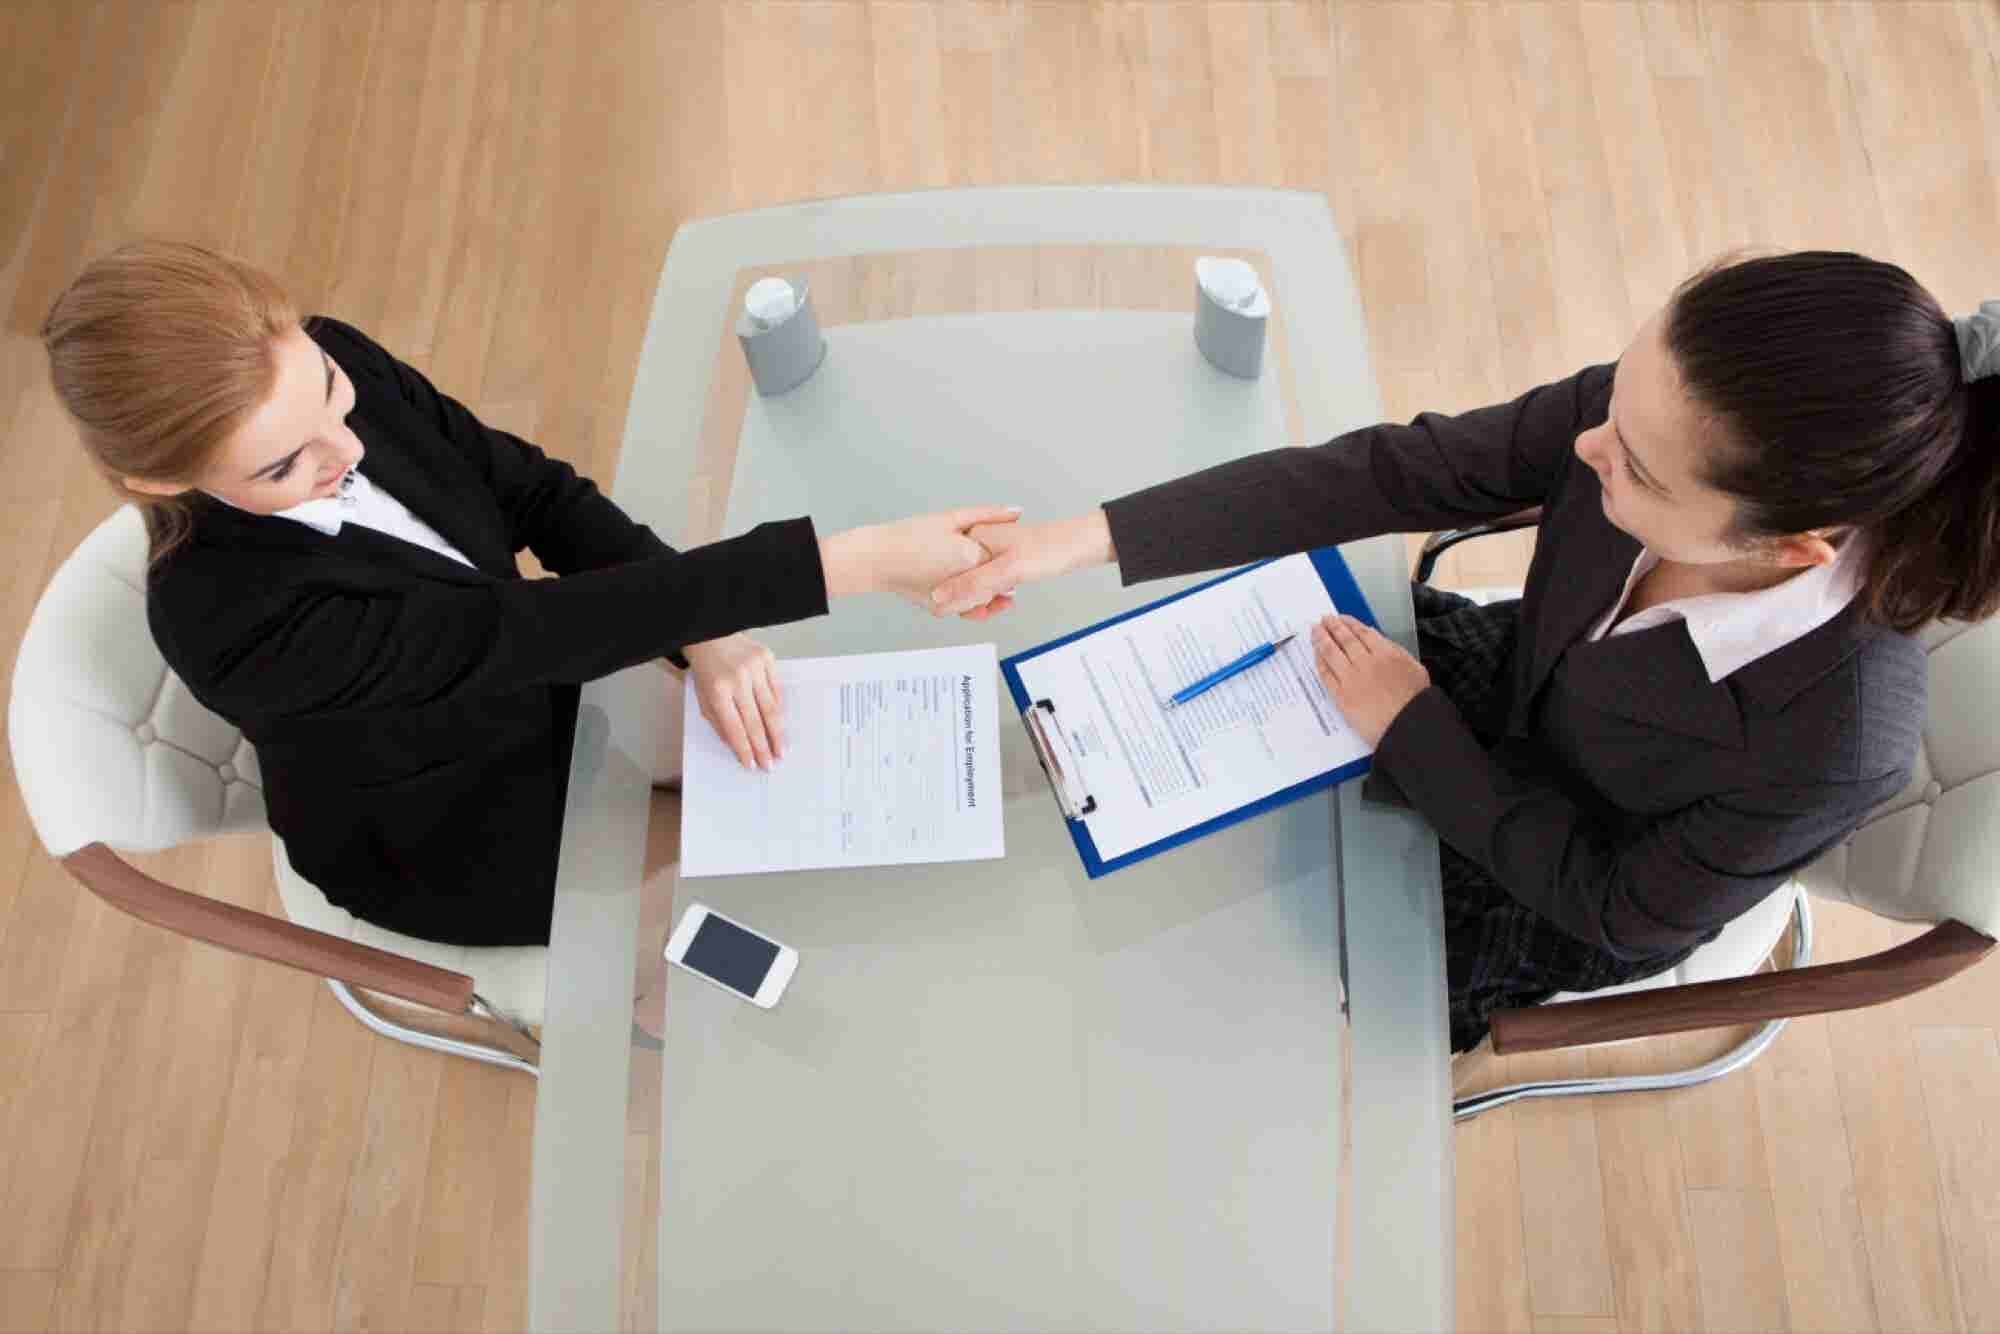 When Hiring, Give Negative References More Weight